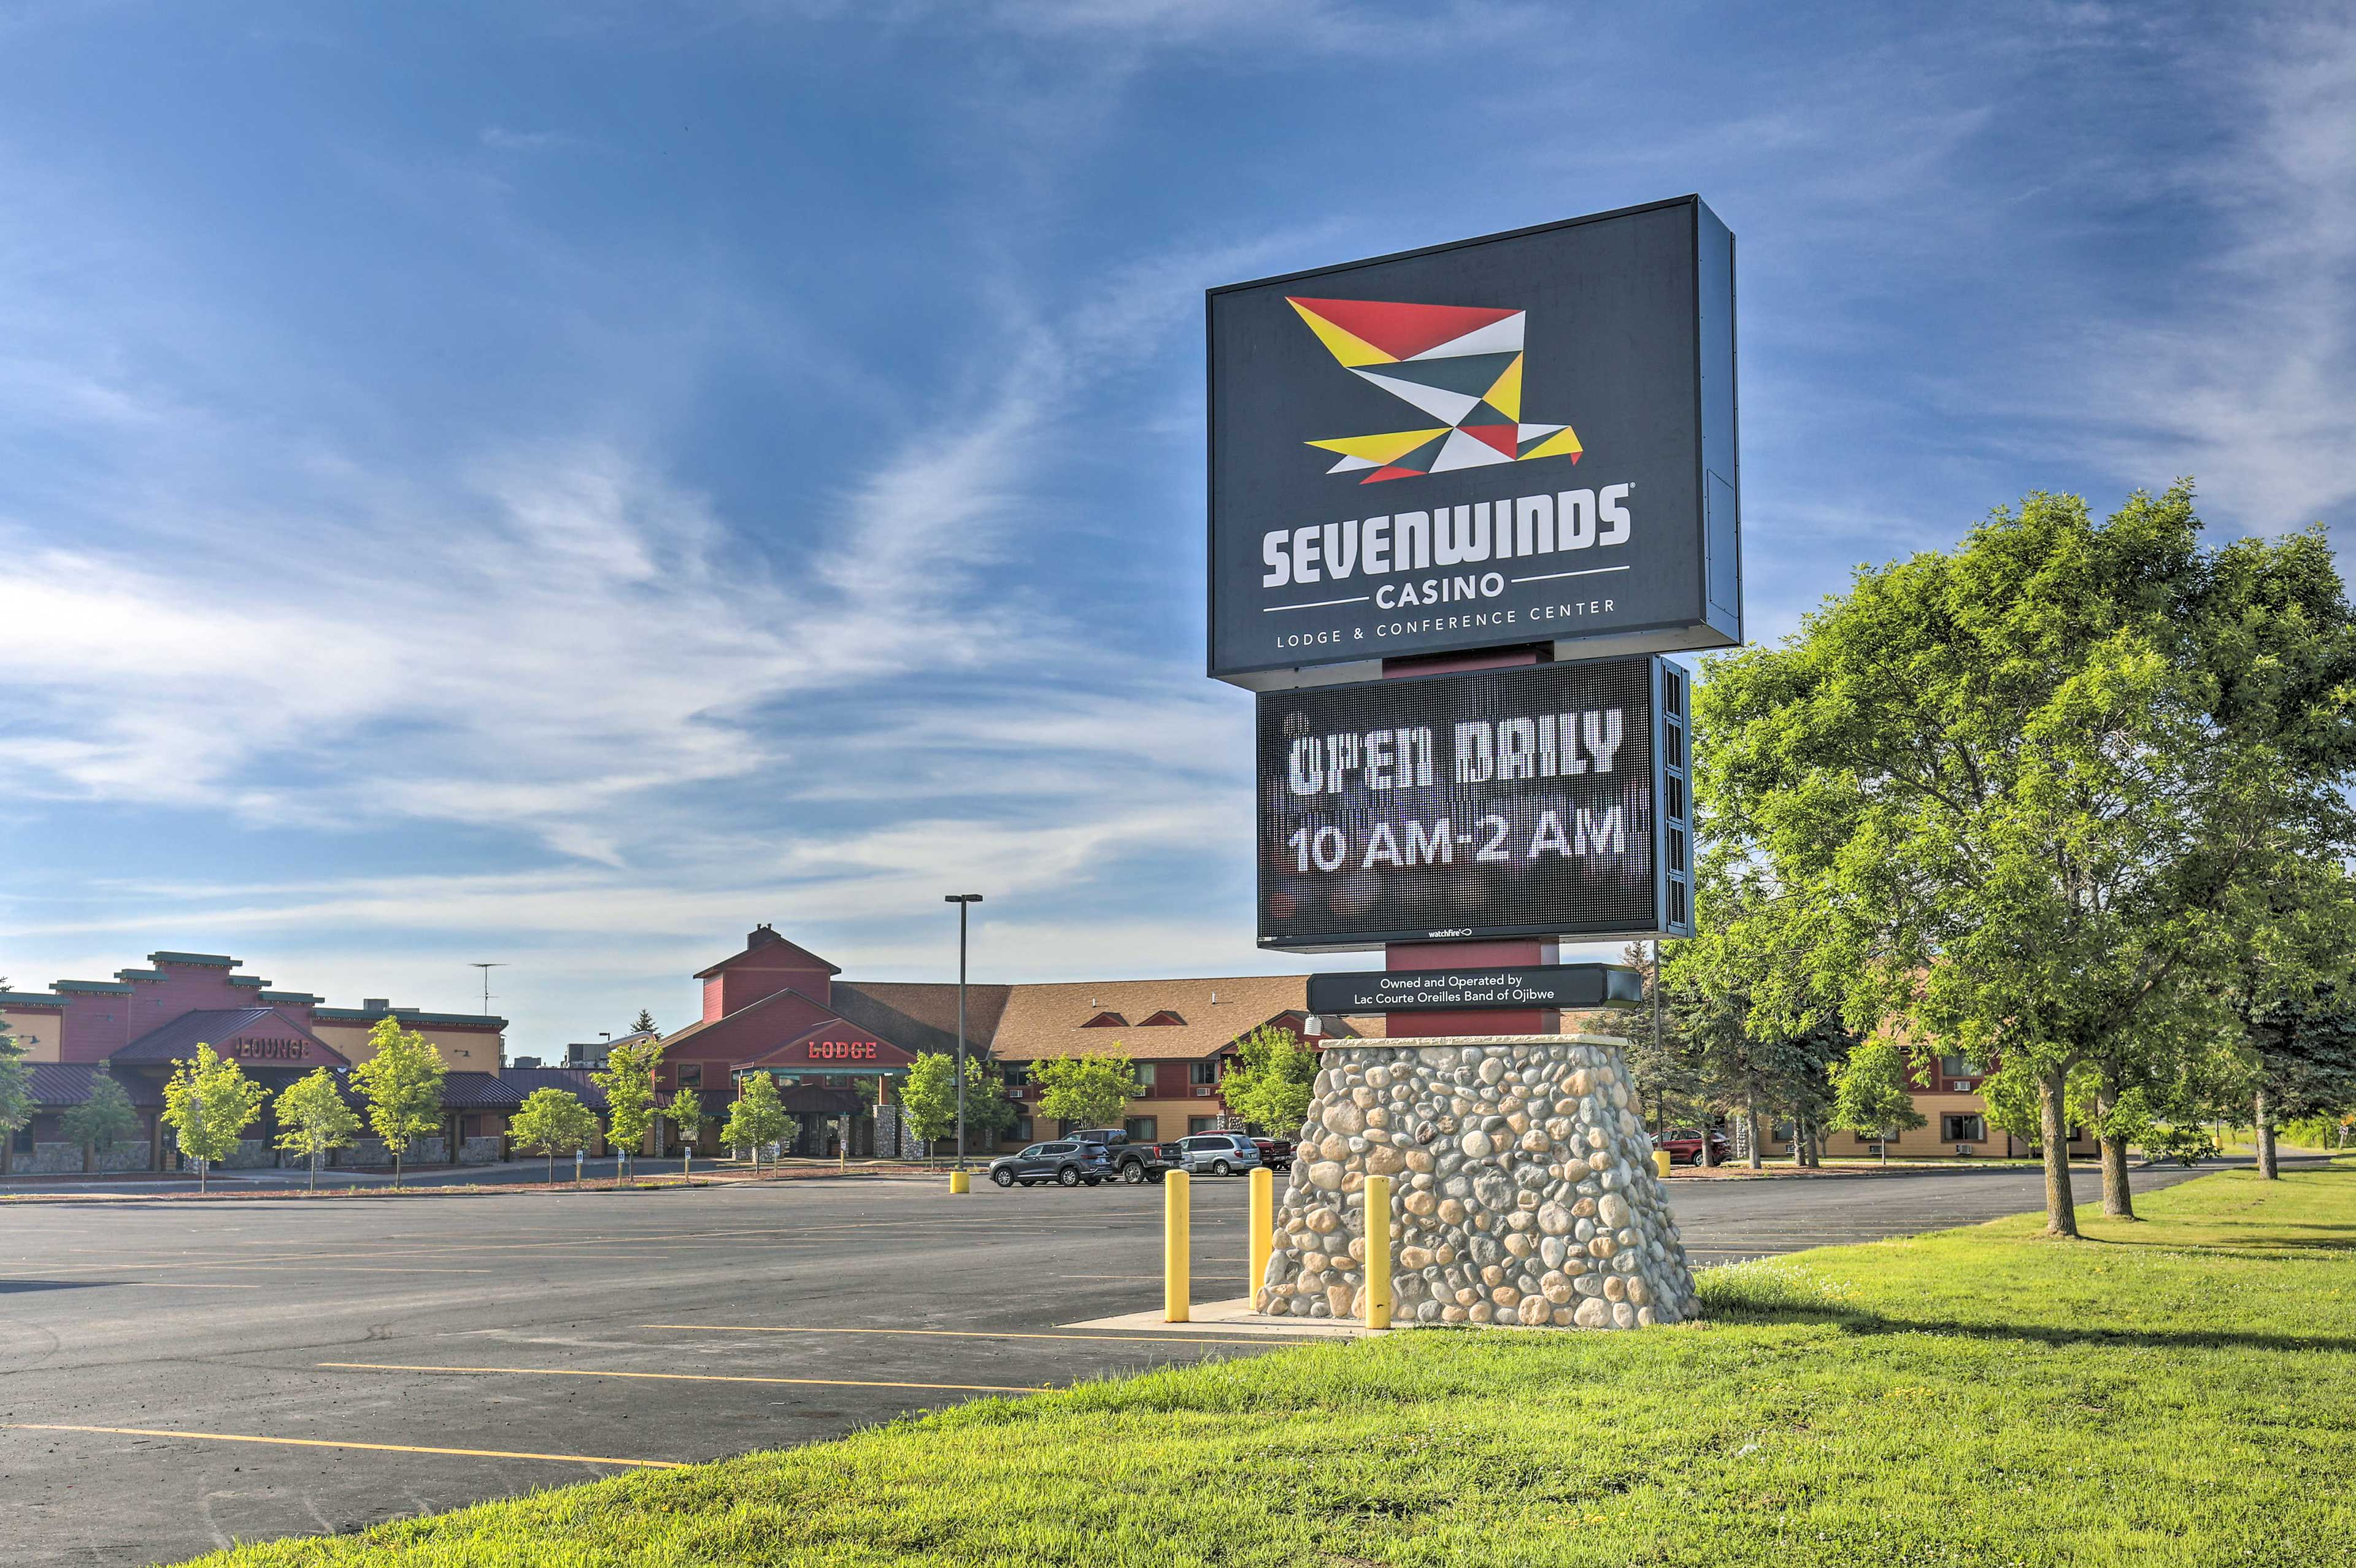 Head to Sevenwinds Casino to test your luck.